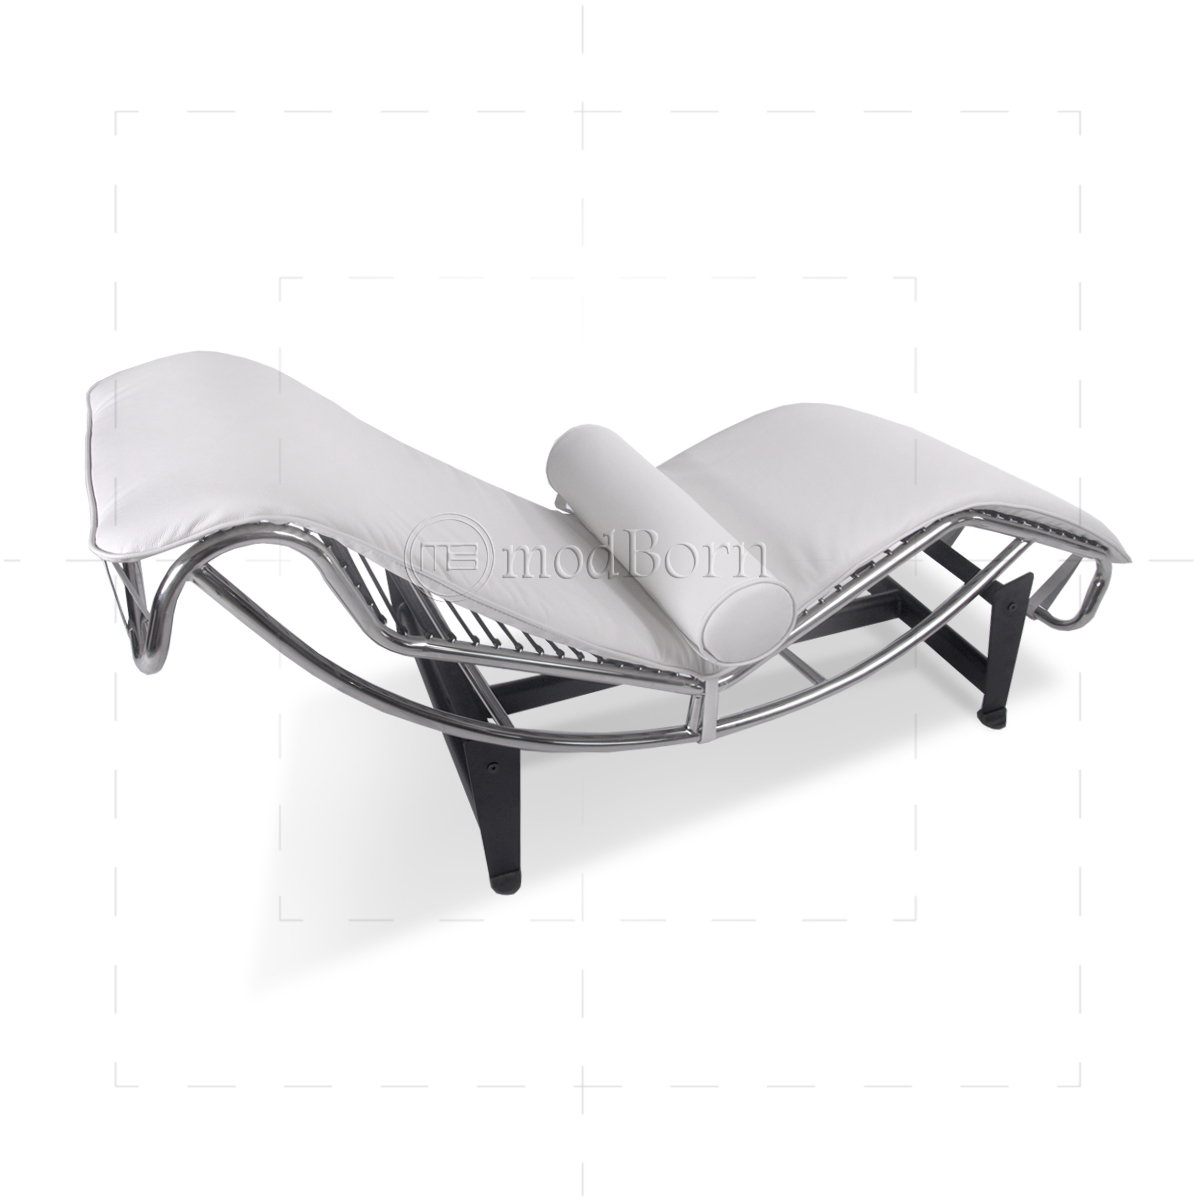 Modborn furnitures product gallery for Chaise corbusier